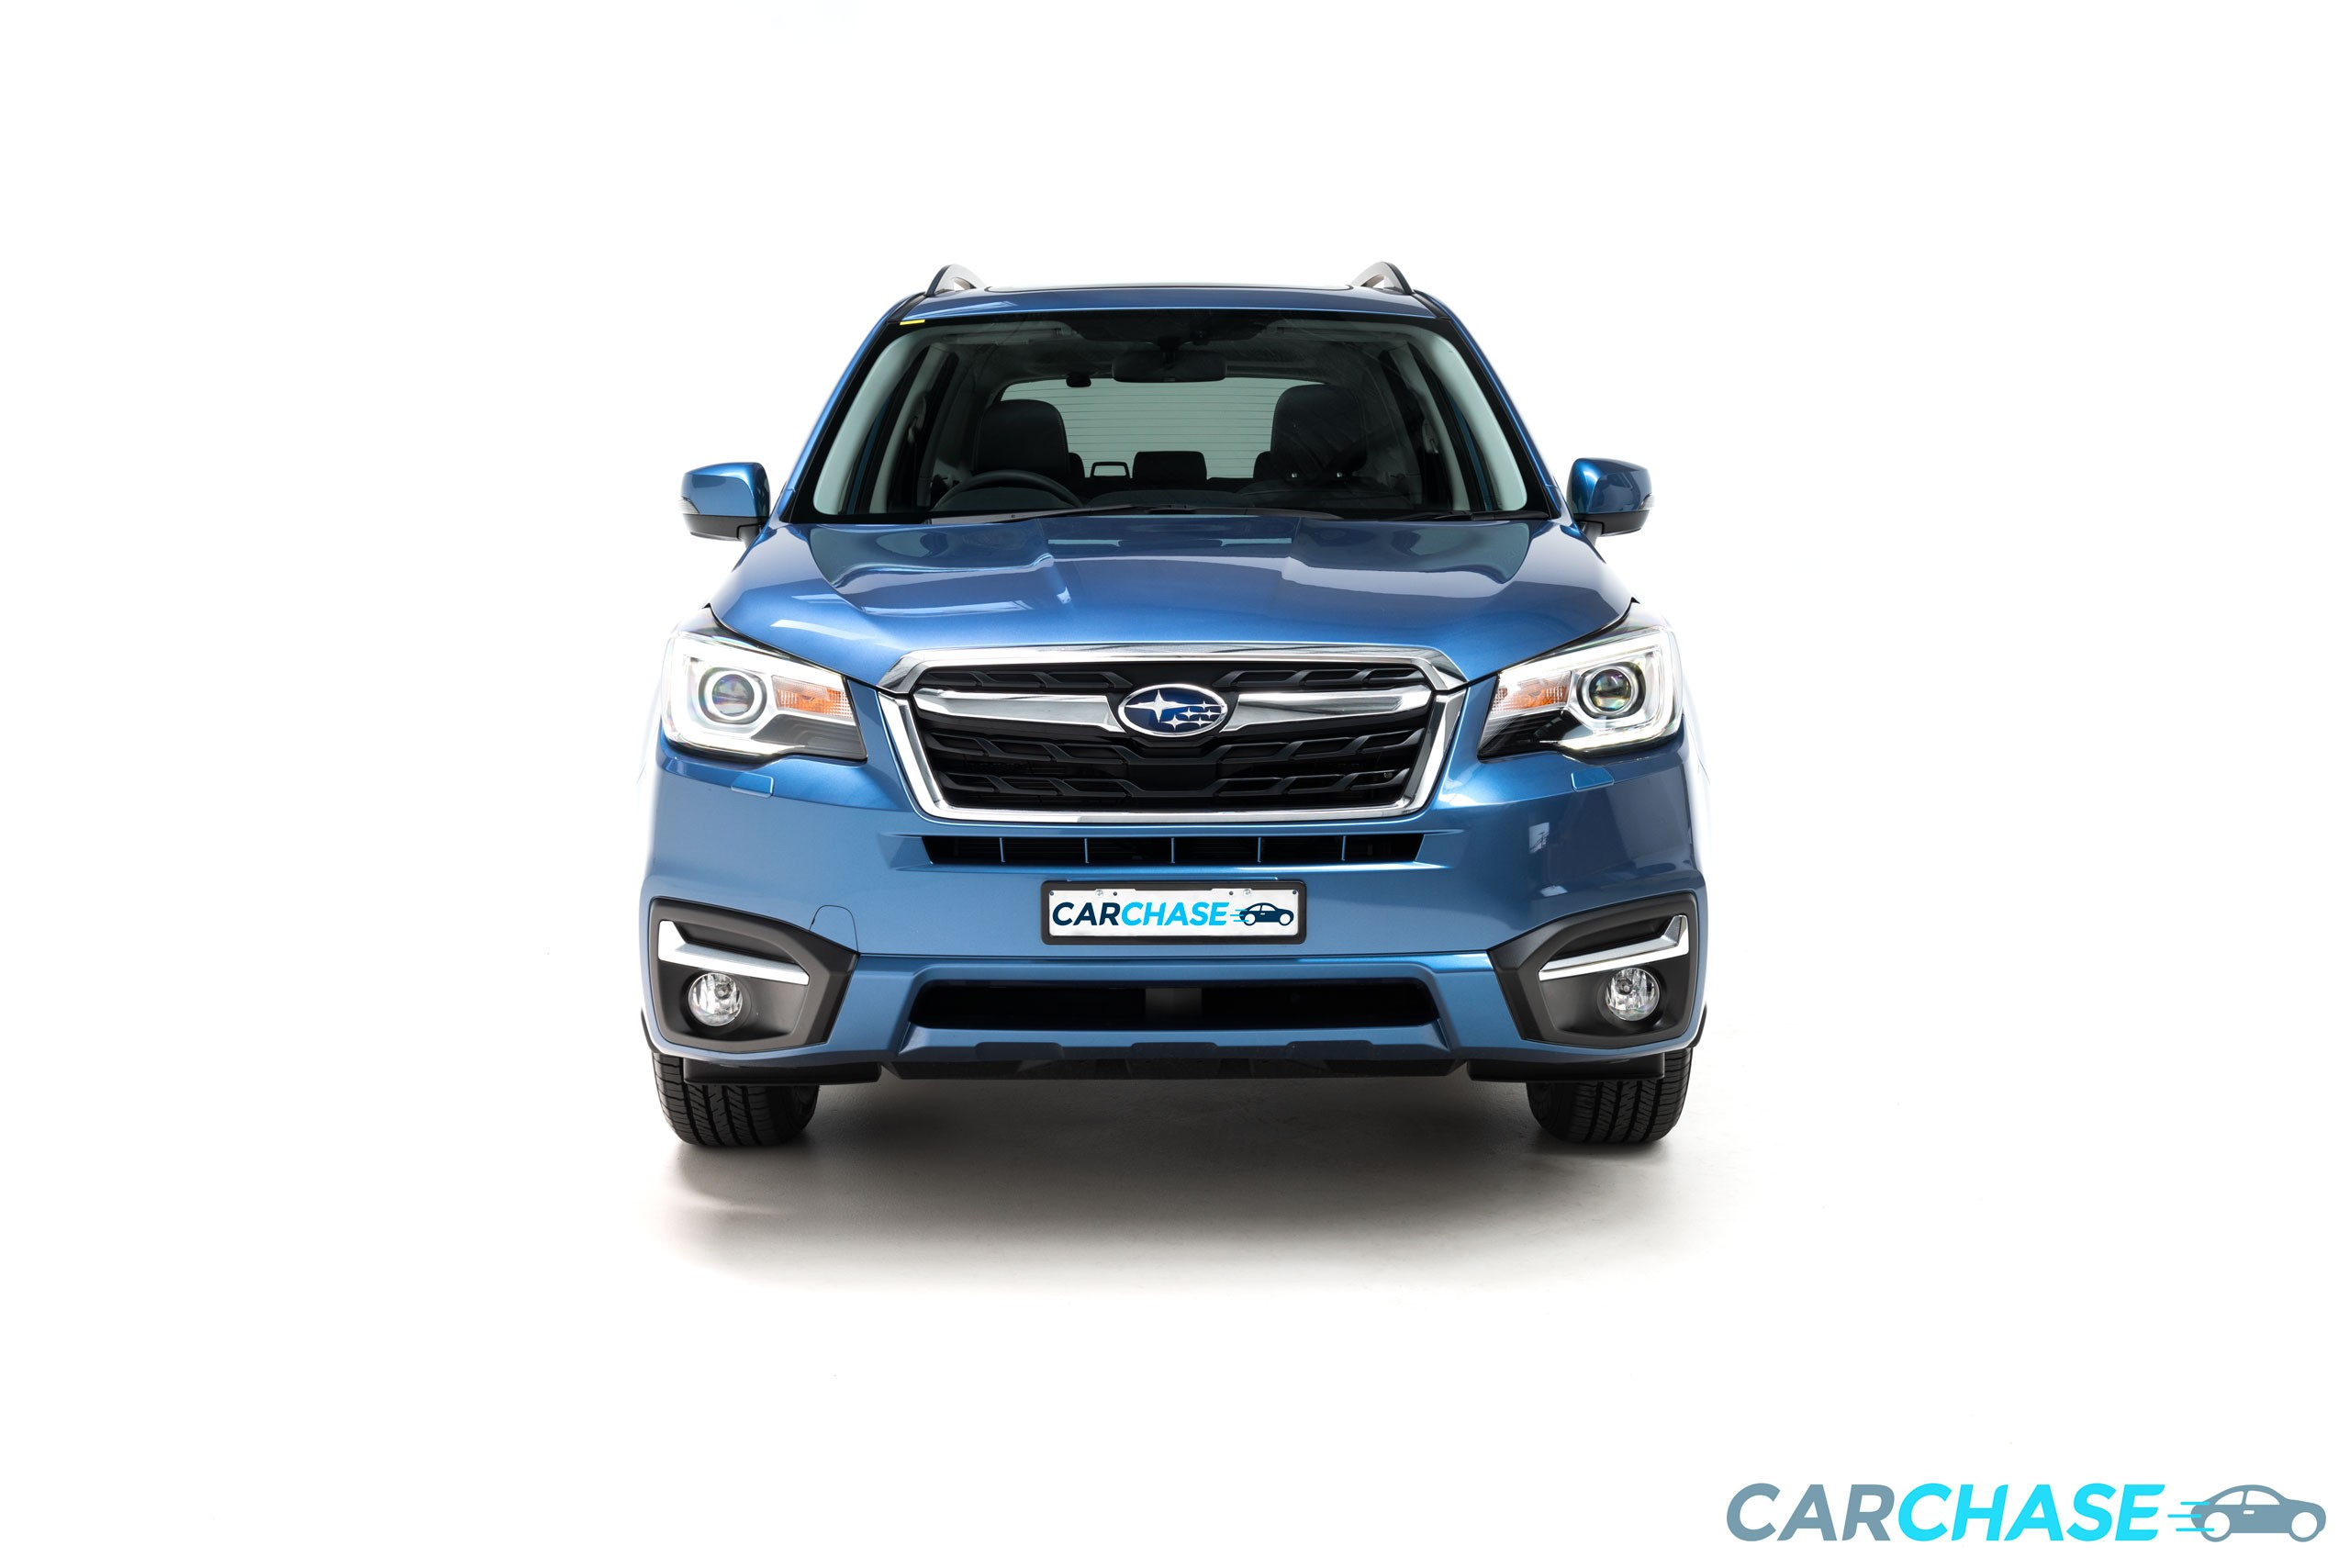 Image of front profile of 2018 Subaru Forester 2.5i-L Luxury